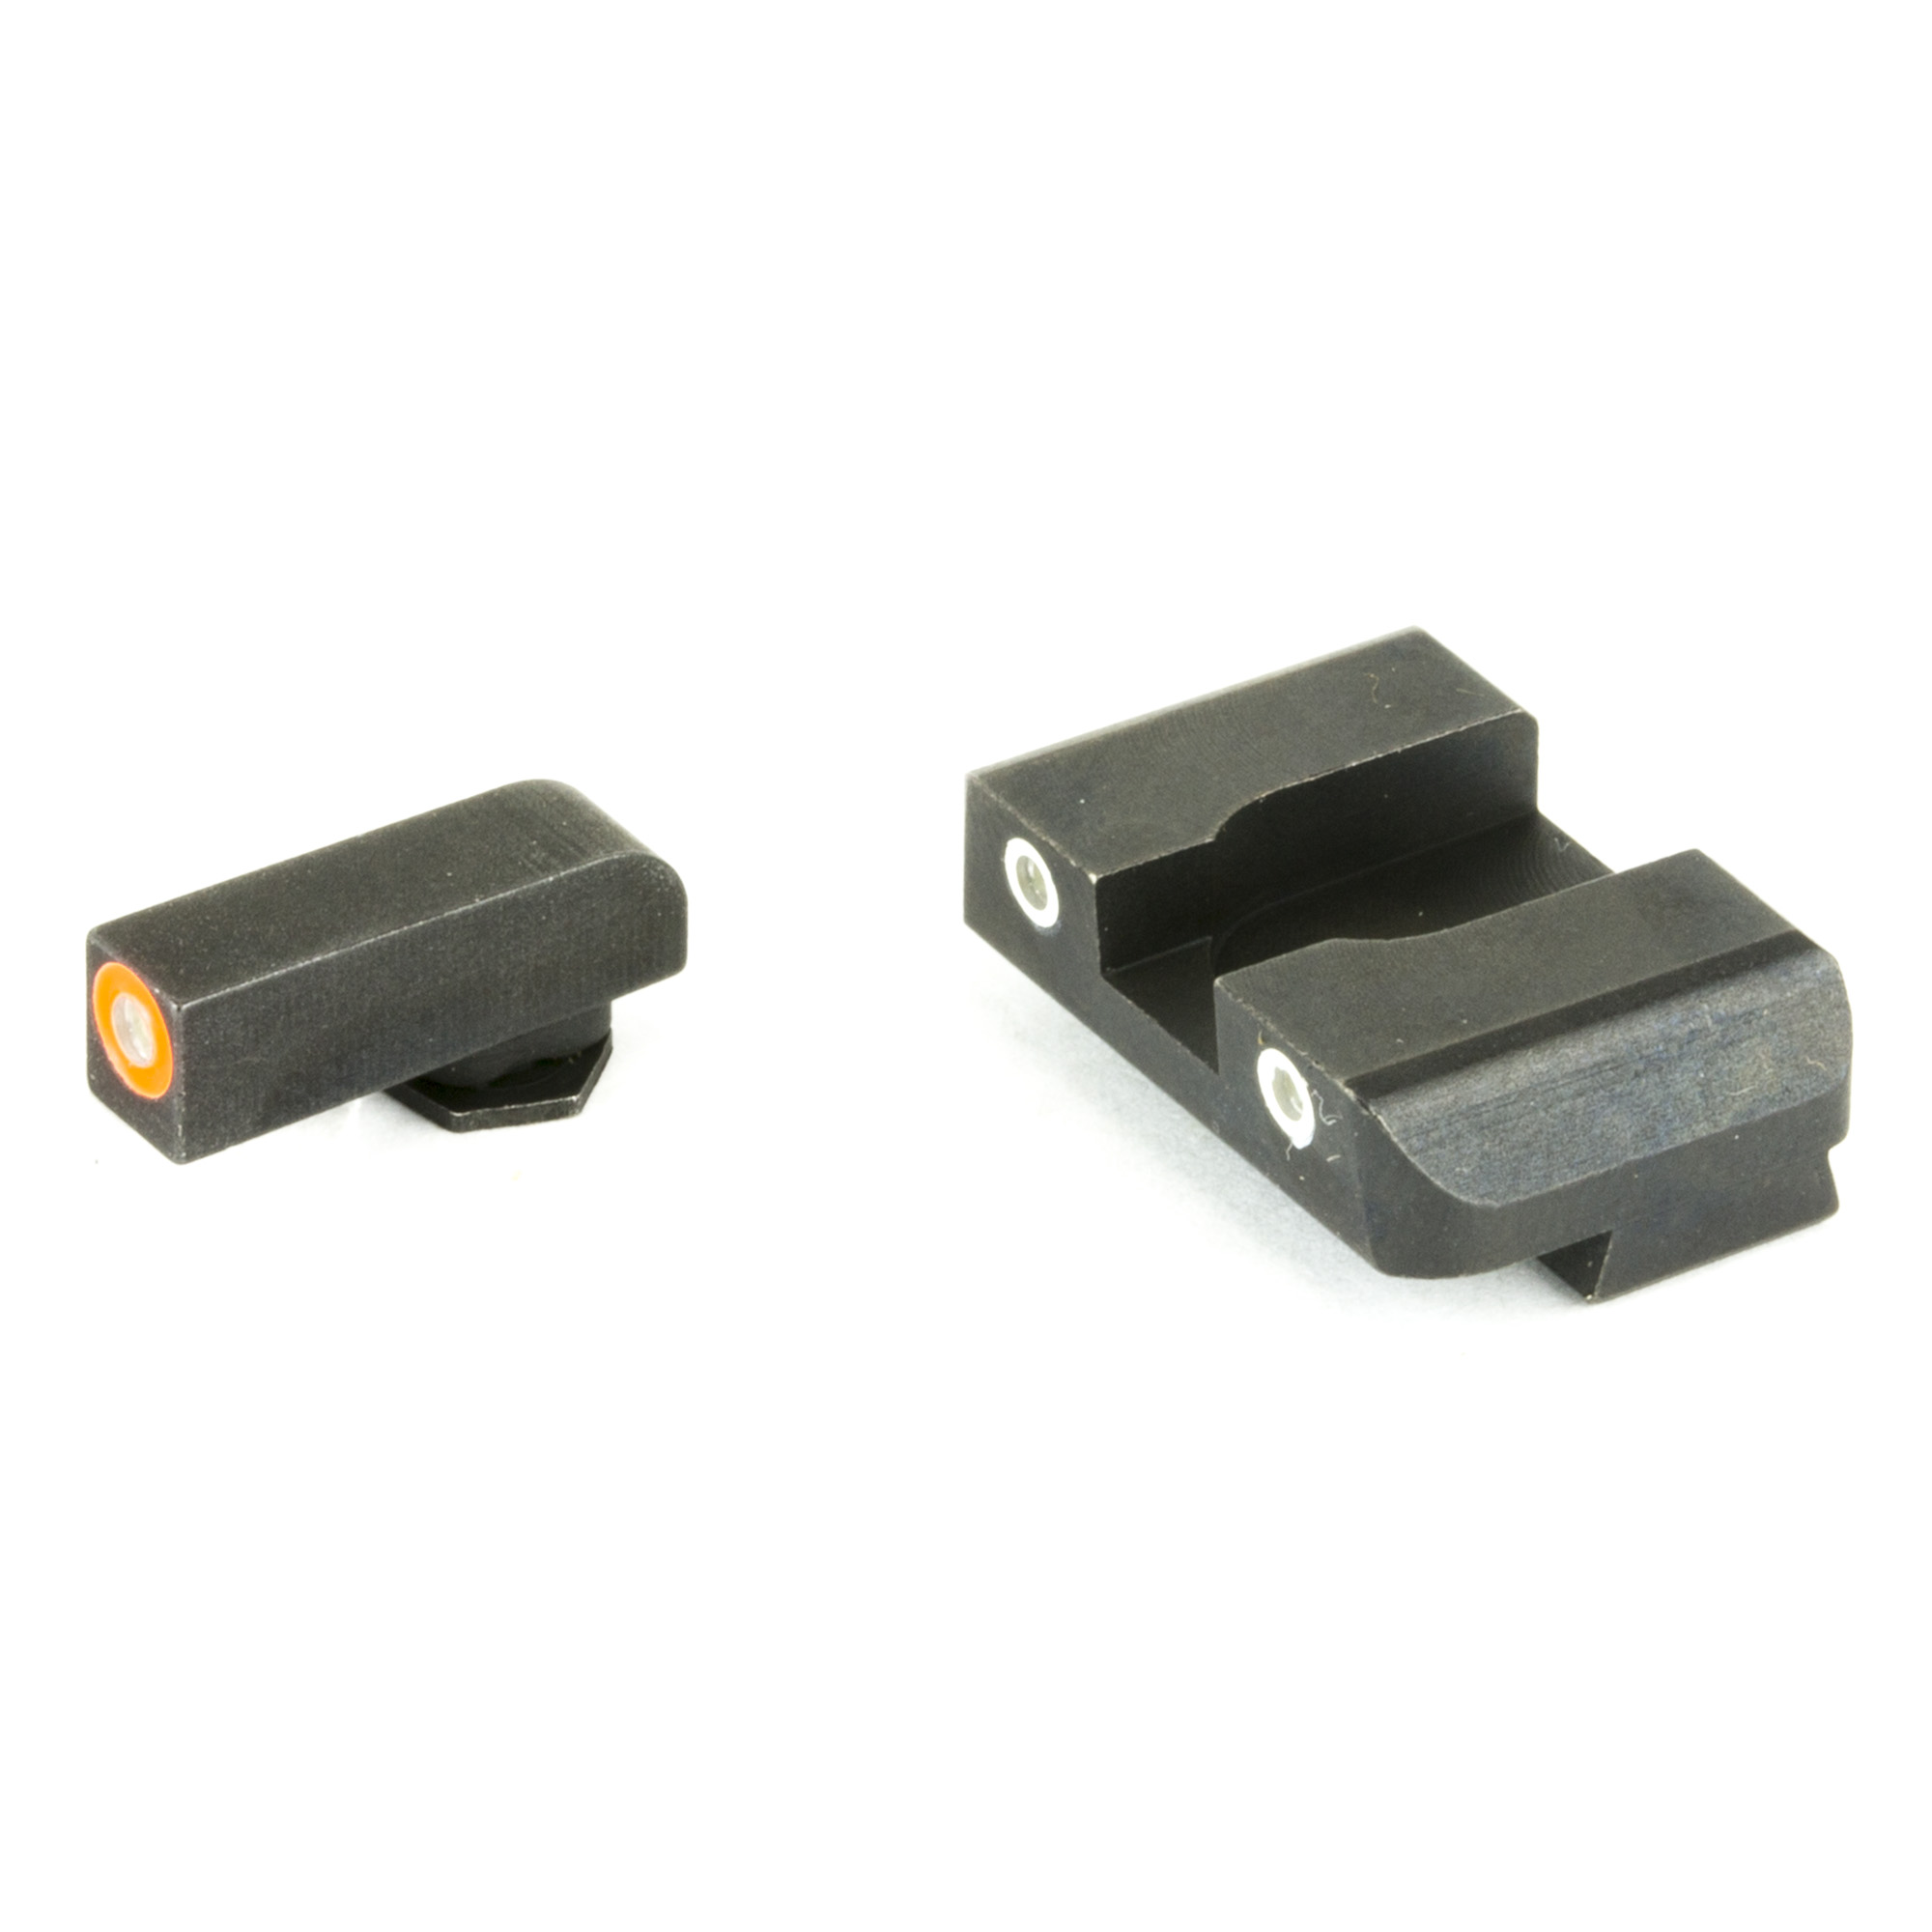 """Sight set with green tritium lamp"""" orange or luminescent green outline front and two green tritium lamp"""" white outline rear for Glocks. Highly visible under all lighting conditions. LumiGreen paint will glow brightly for 10 minutes after light exposure."""